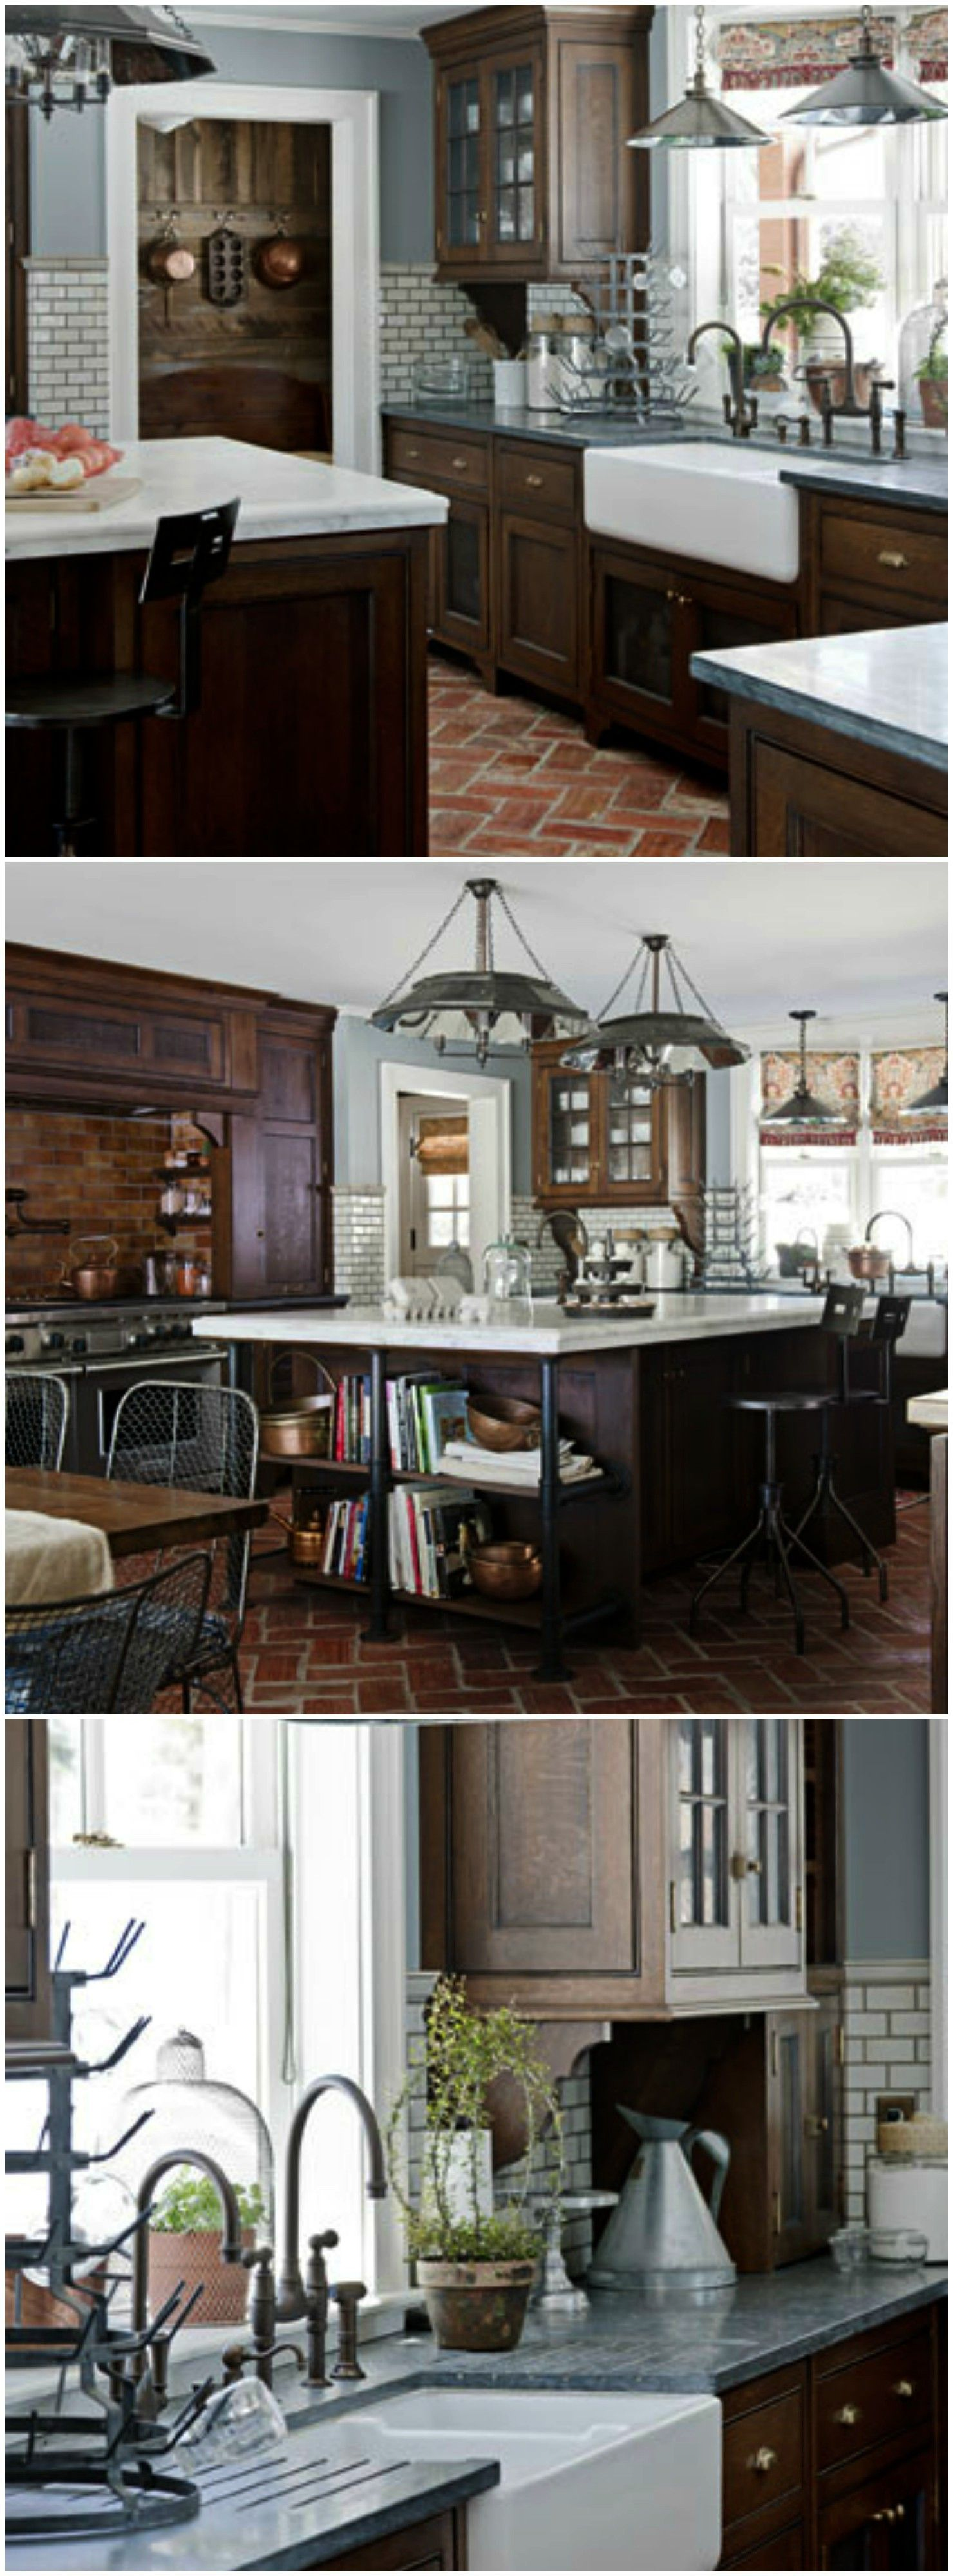 A Modern Farmhouse Kitchen Industrial farmhouse kitchen